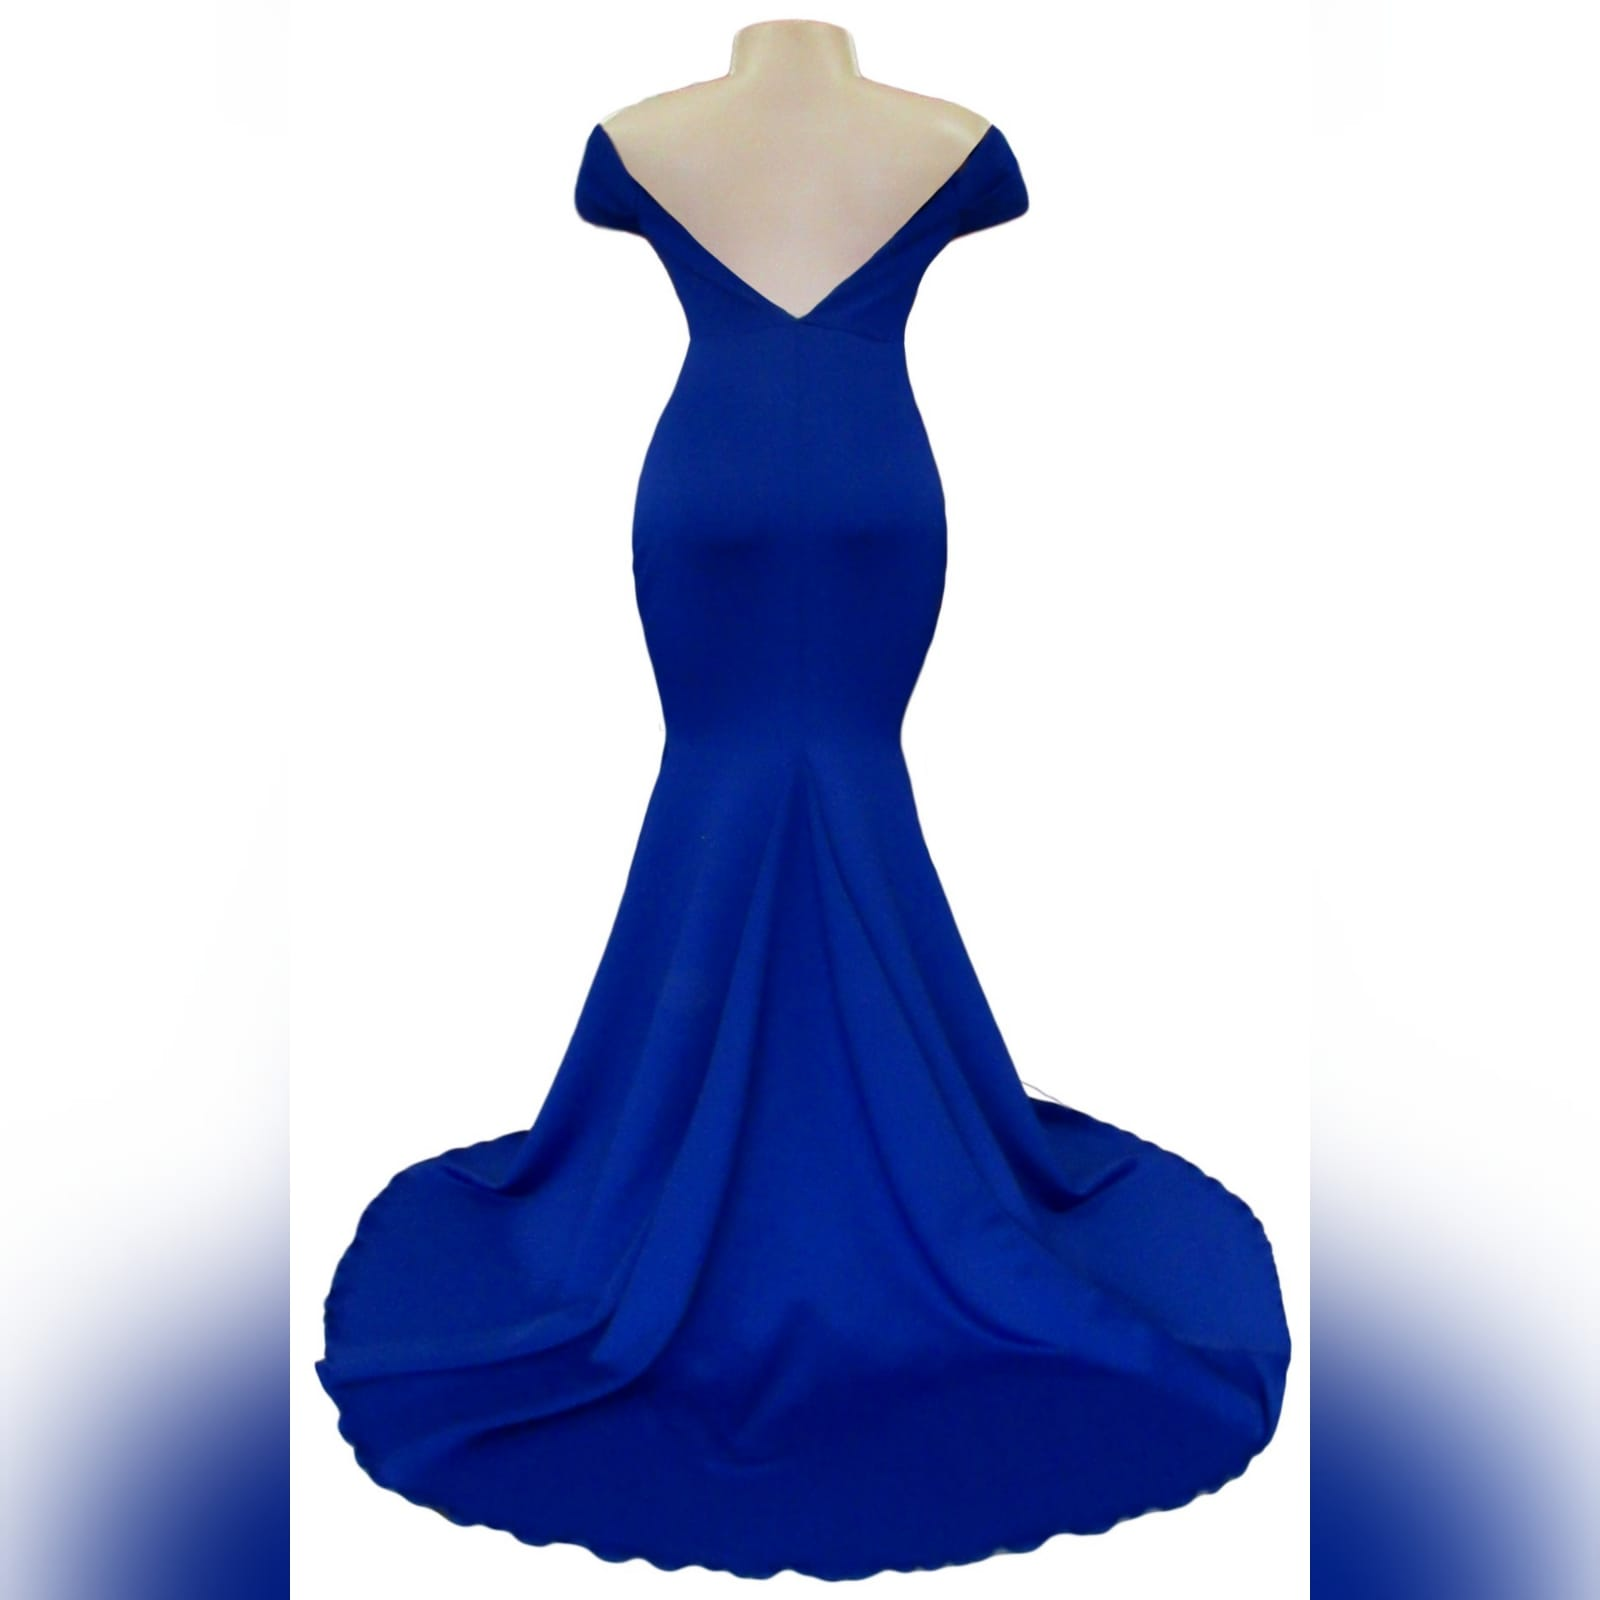 Royal blue off shoulder soft mermaid matric dance dress 4 royal blue off shoulder soft mermaid prom dress with a cross bust strap creating off shoulder sleeves and a rounded open back, with a train.